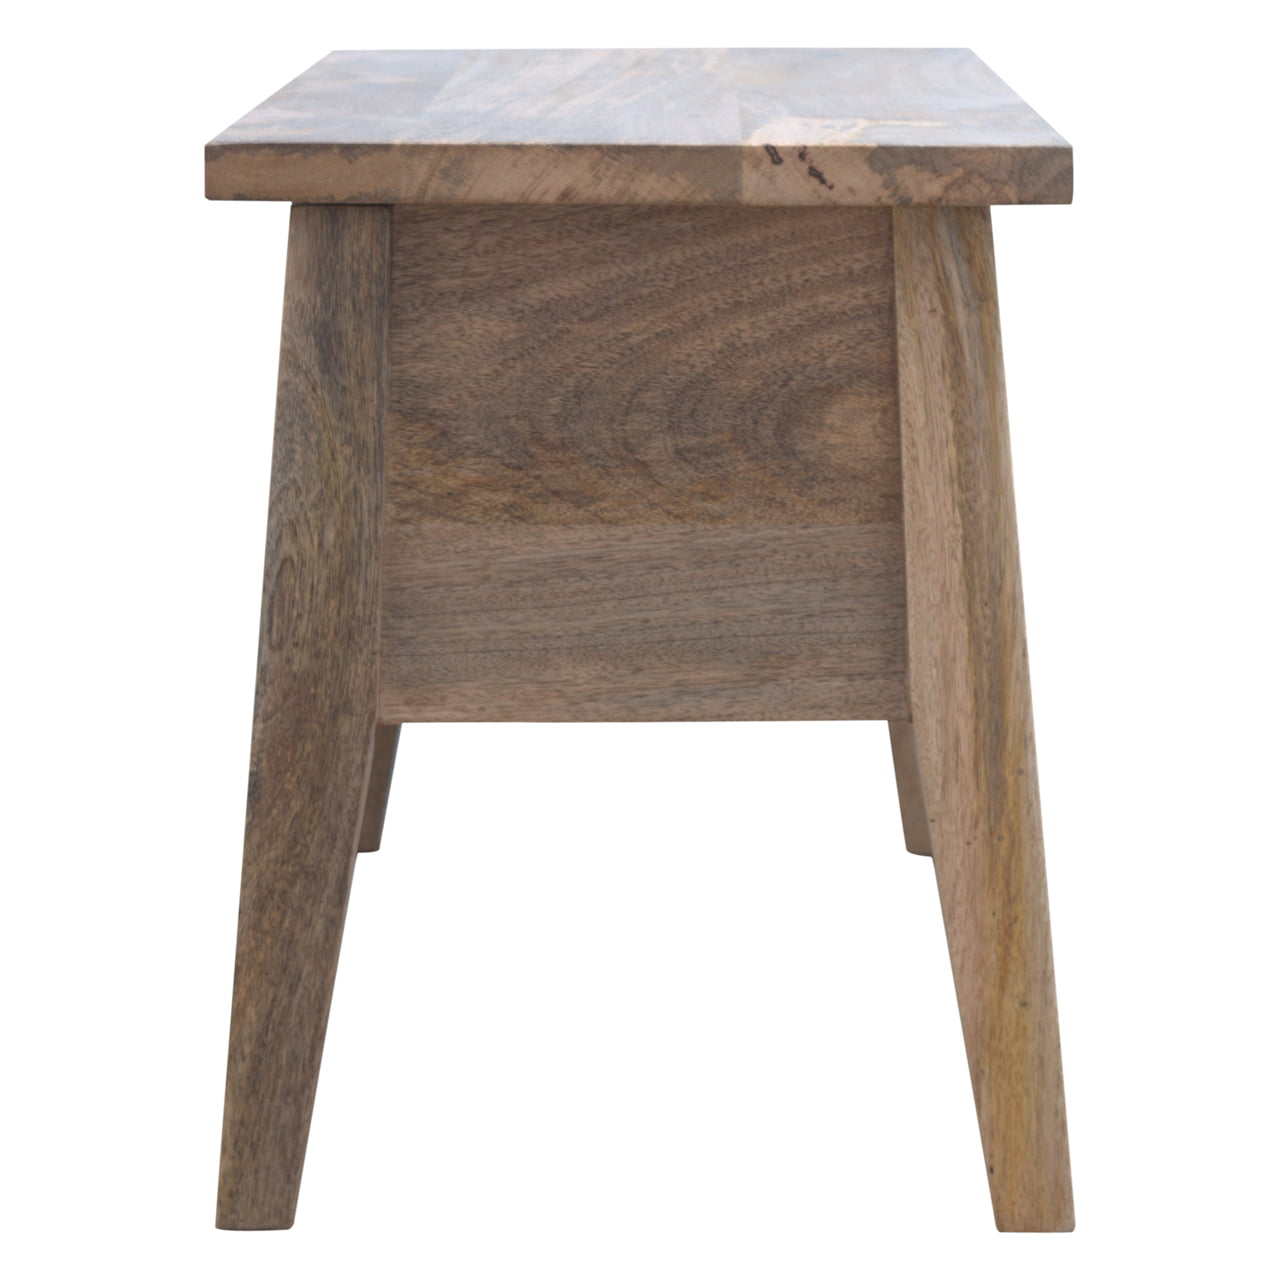 Fantastic Solid Wood Nordic Lid Up Storage Bench Caraccident5 Cool Chair Designs And Ideas Caraccident5Info